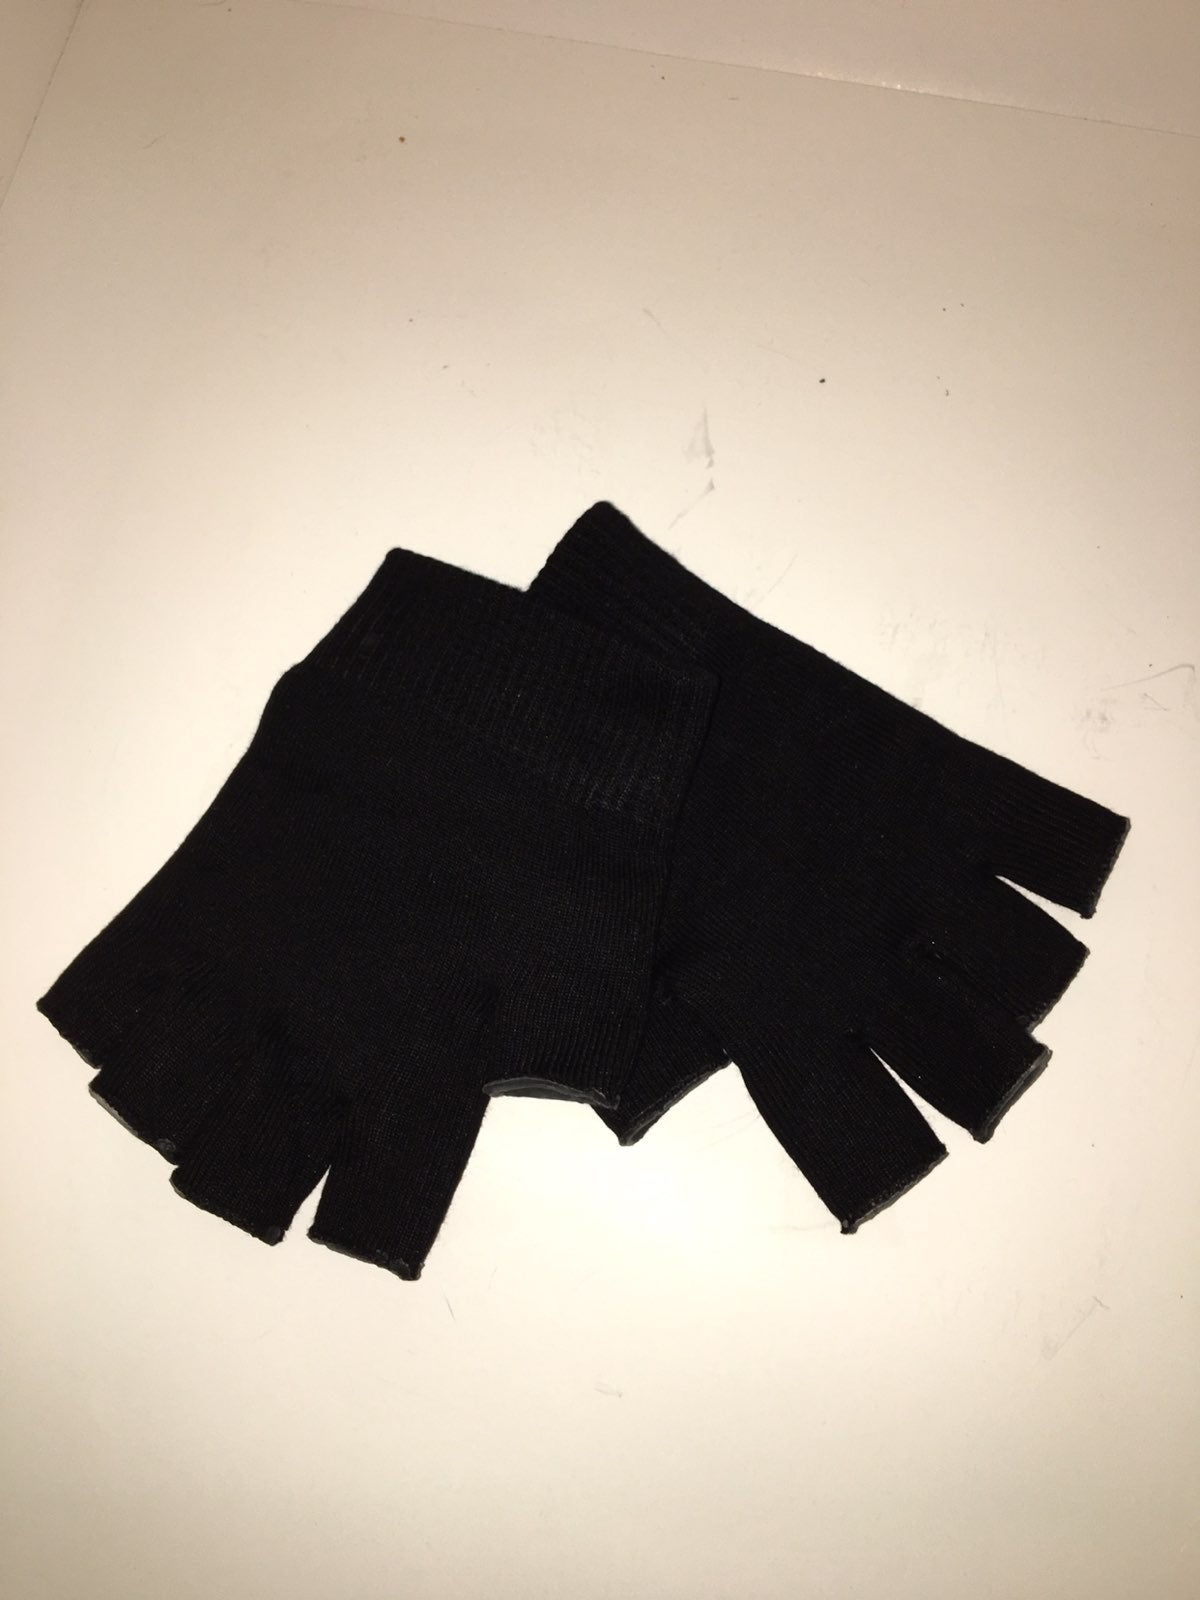 Therapeutic gloves